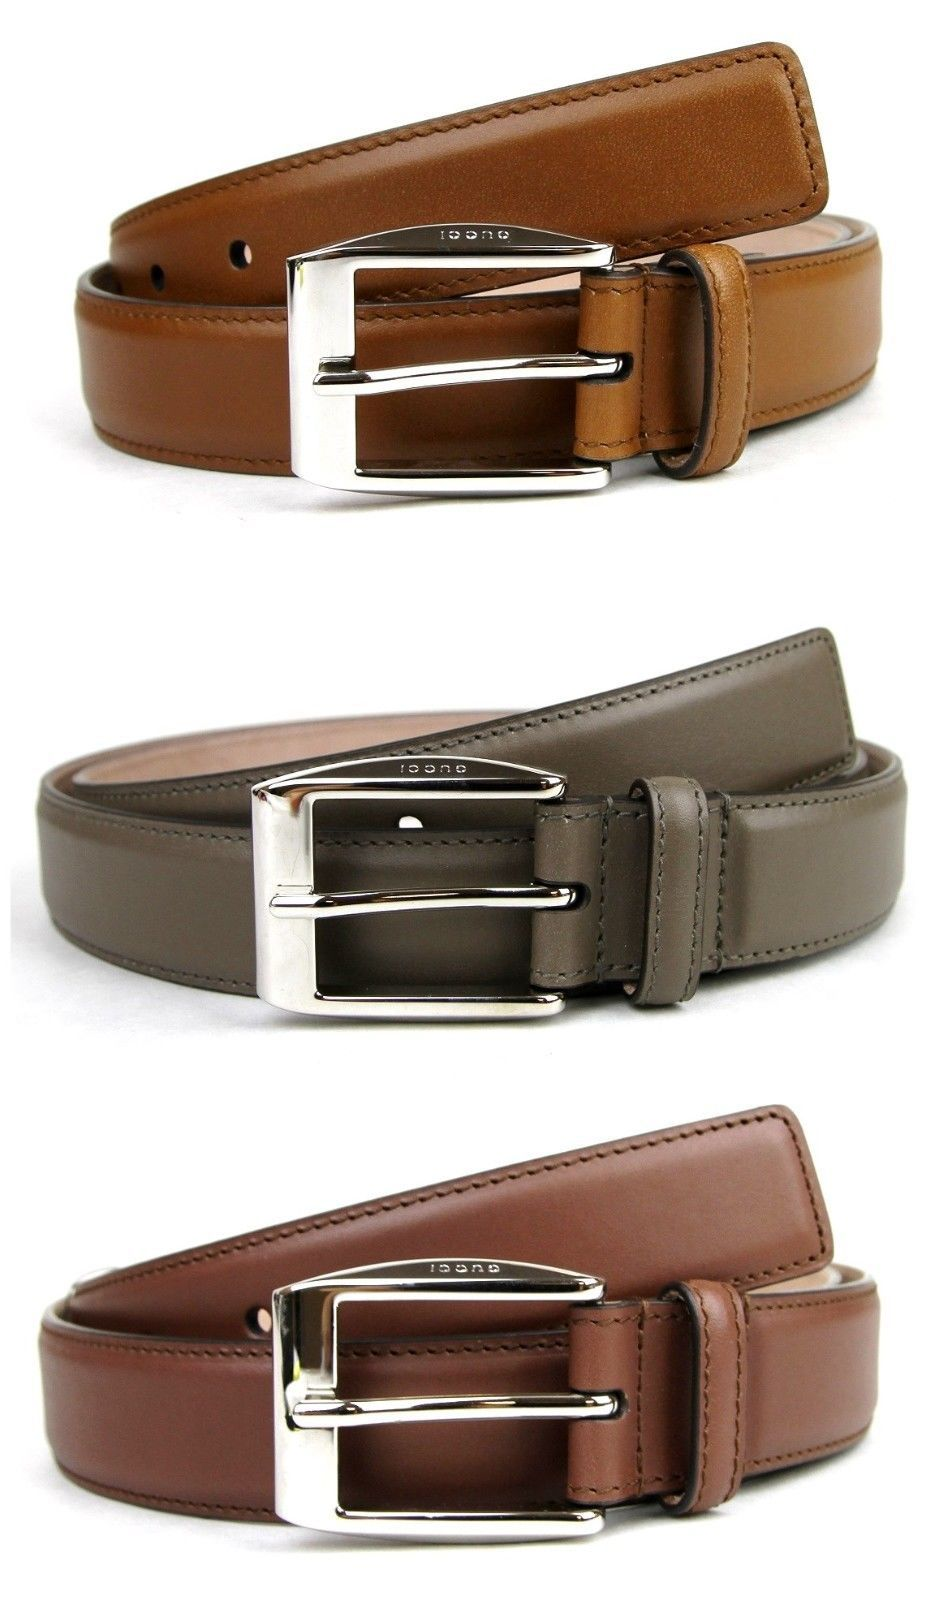 Authentic Gucci Mens Leather Belt With Classic Square Buckle 336831 Bgh0N  Cinturones a2b05f72cf4e